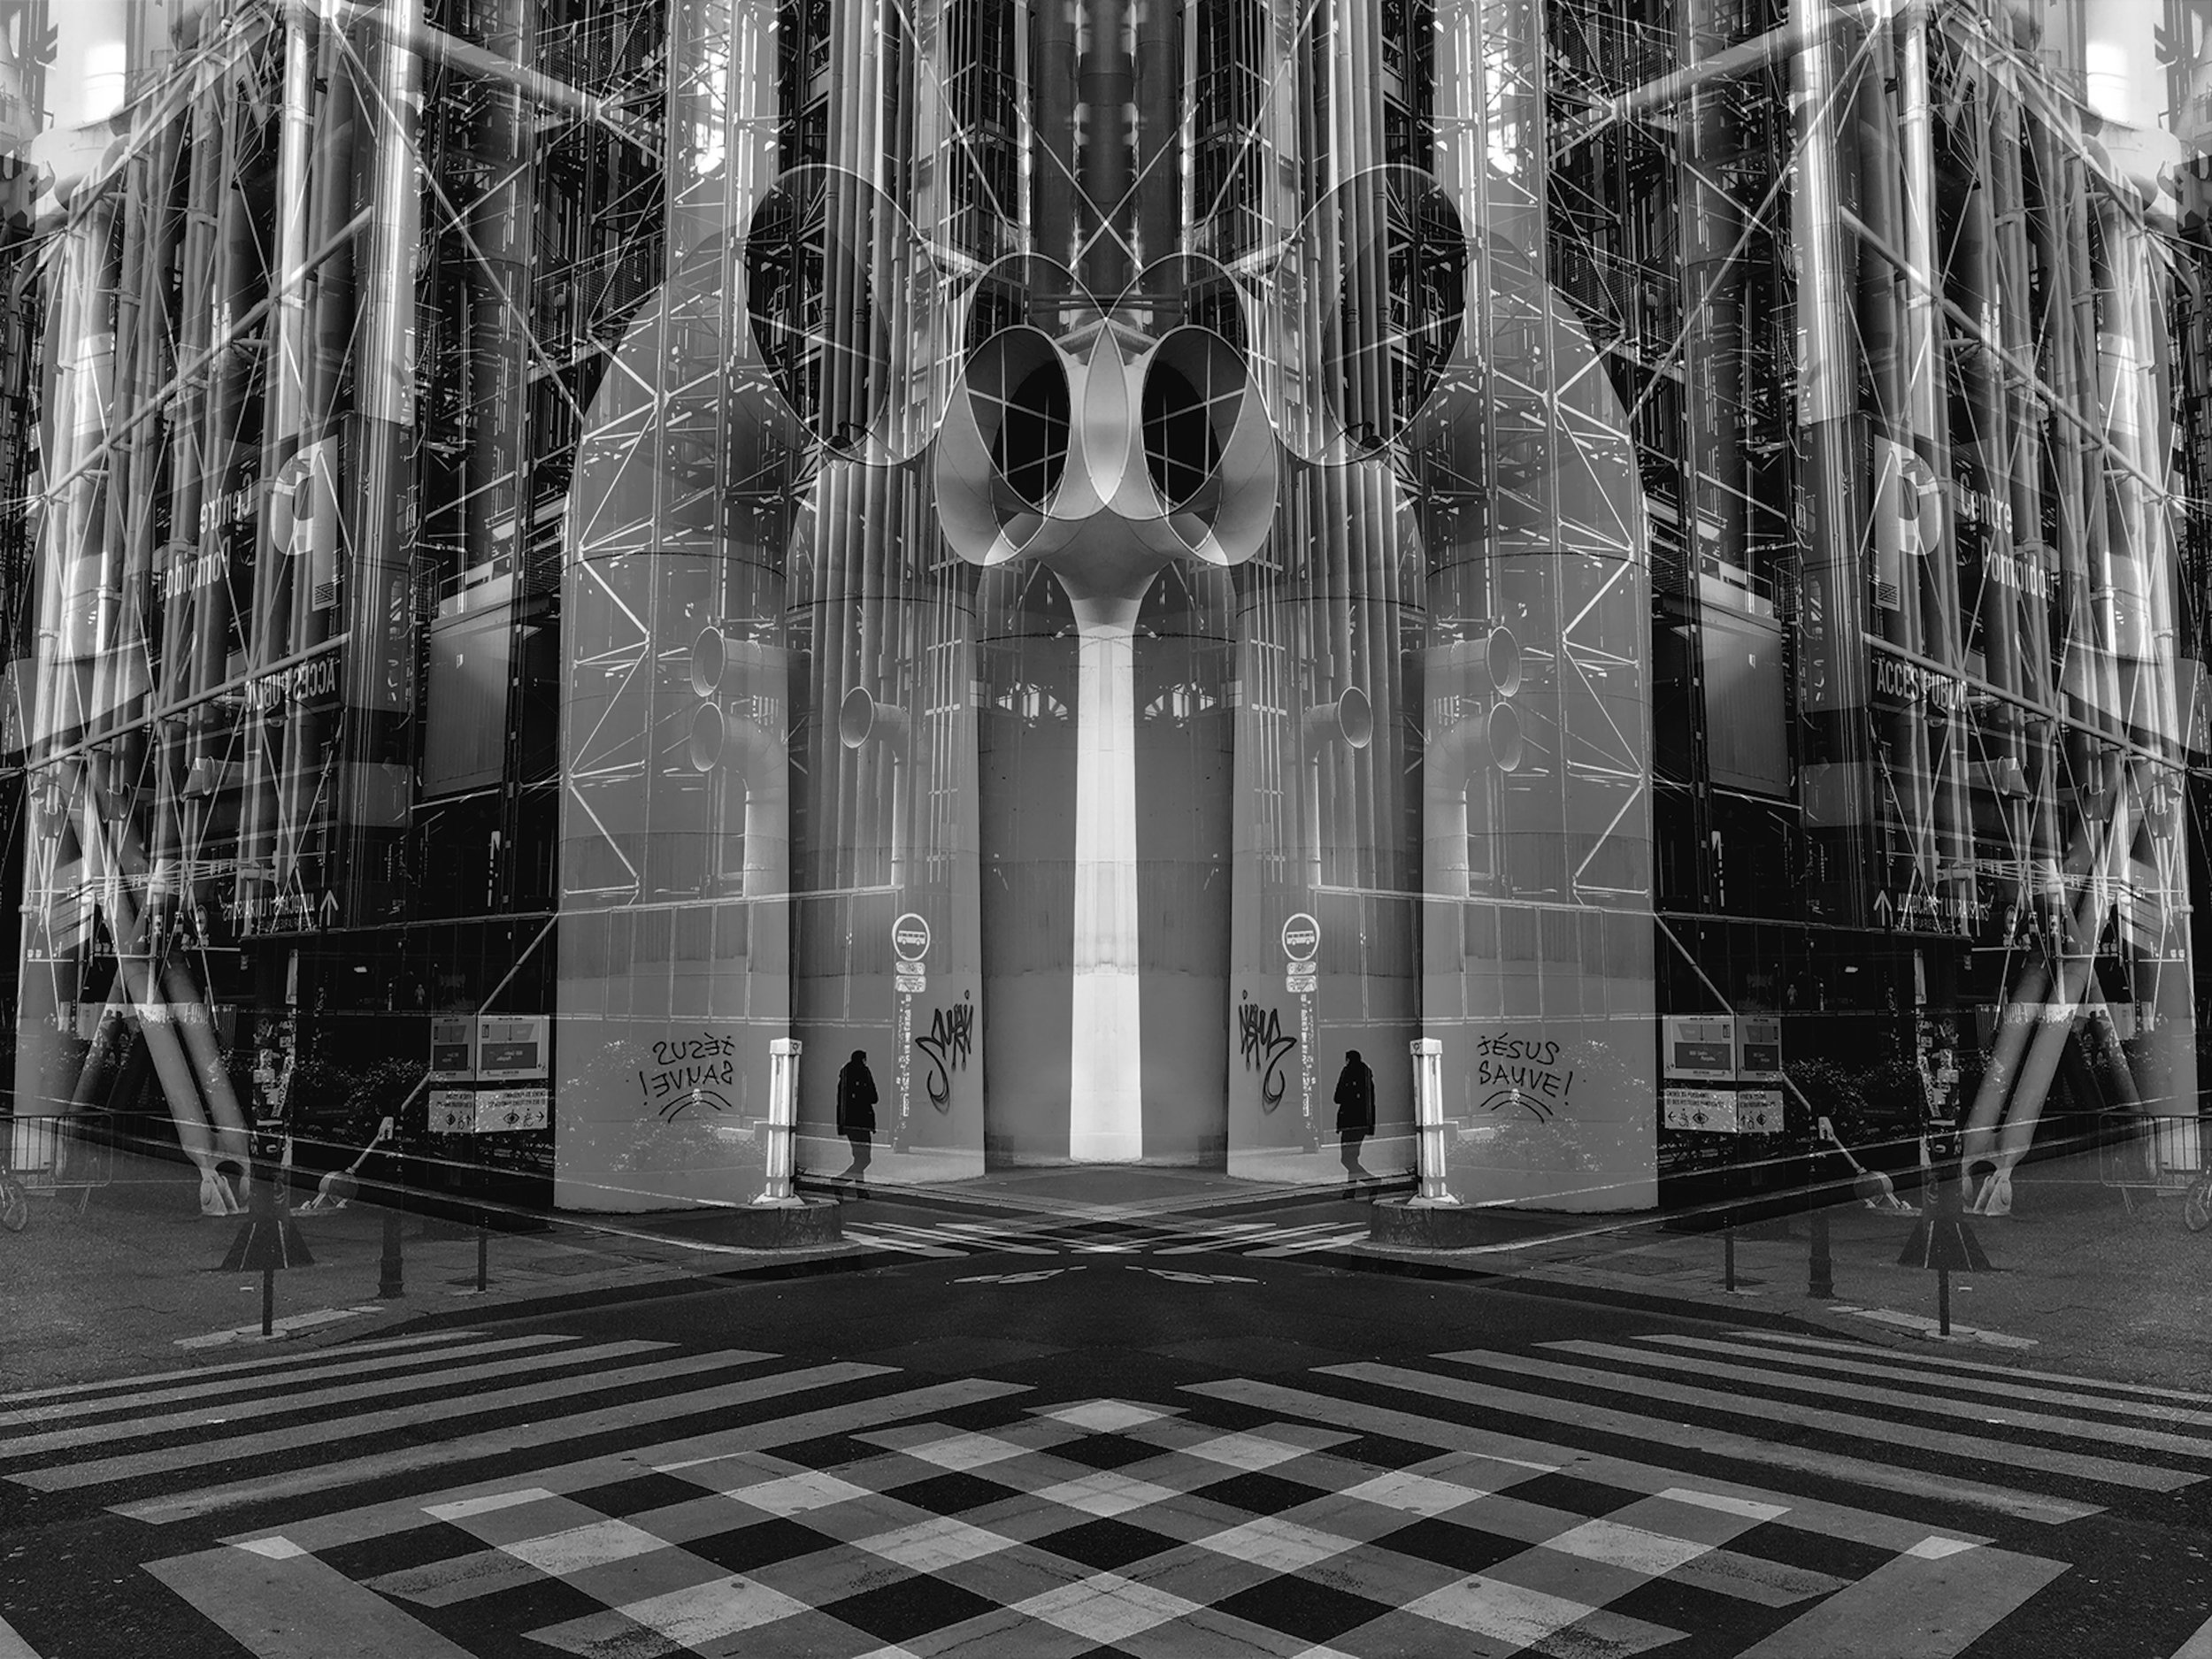 Crossroads , Paris, 2018  Series:  Metropolis - LDN / PAR / NYC   Silver print Dibond  360 x 480mm (image)  Edition: 3 + 1 AP  Signed, dated and numbered on verso  © Alastair Whitton  Acquisitions / enquiries: gallery@barnardgallery.com